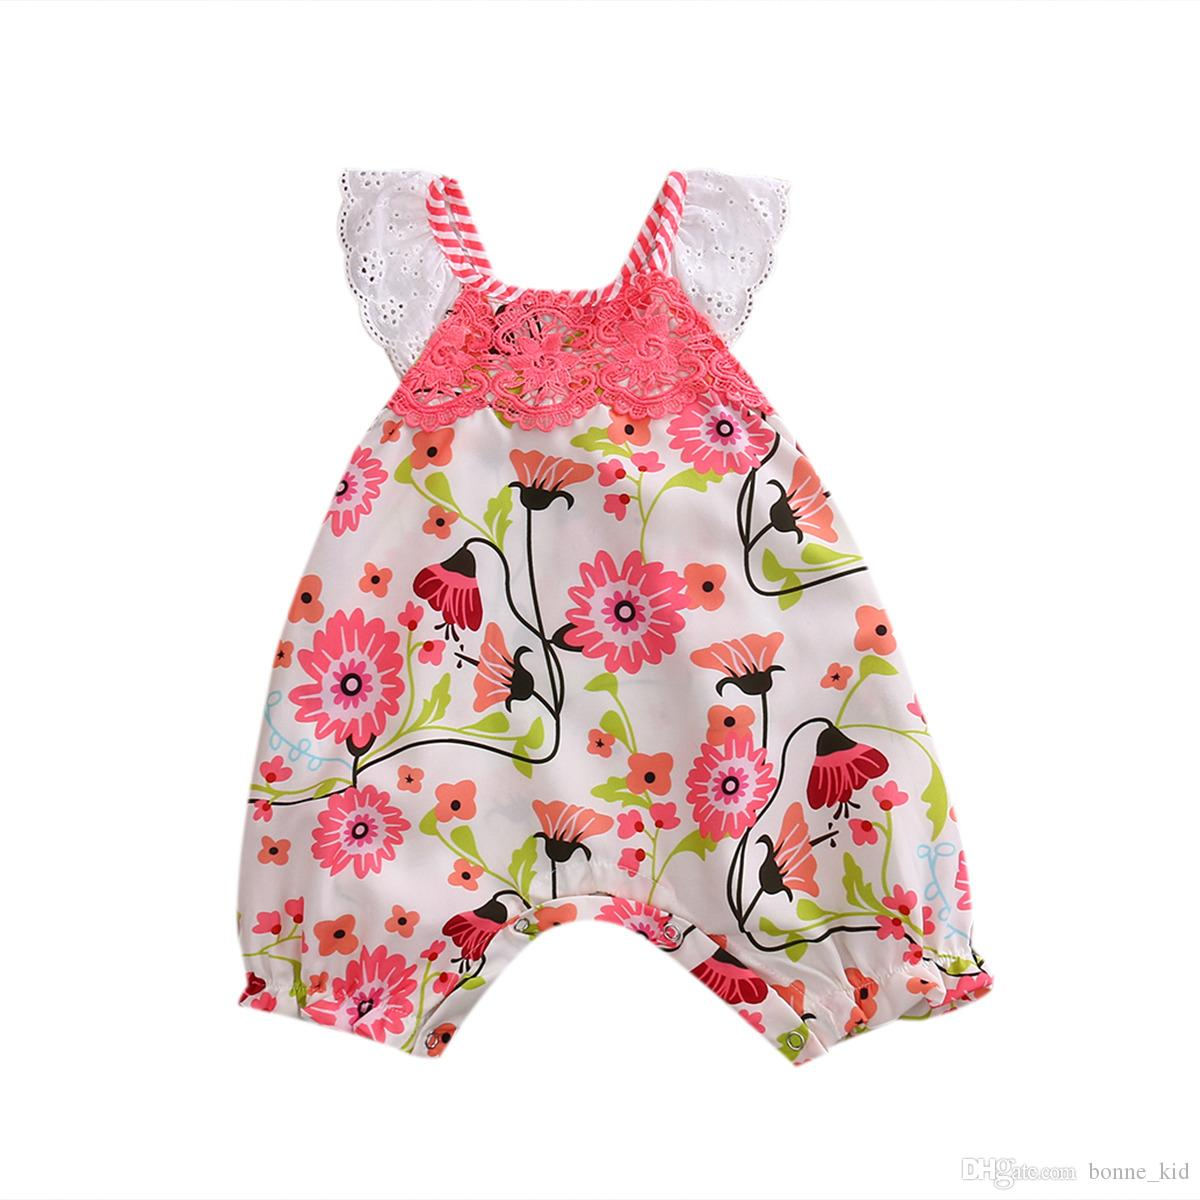 7a8db4c8f8c 2019 Sweet Summer Baby Girl Lace Flower Pink Jumpsuit Flying Sleevele  Floral Romper Onesies Baby Outfit Bodysuit Sunsuit Kid Clothing Set 0 24M  From ...